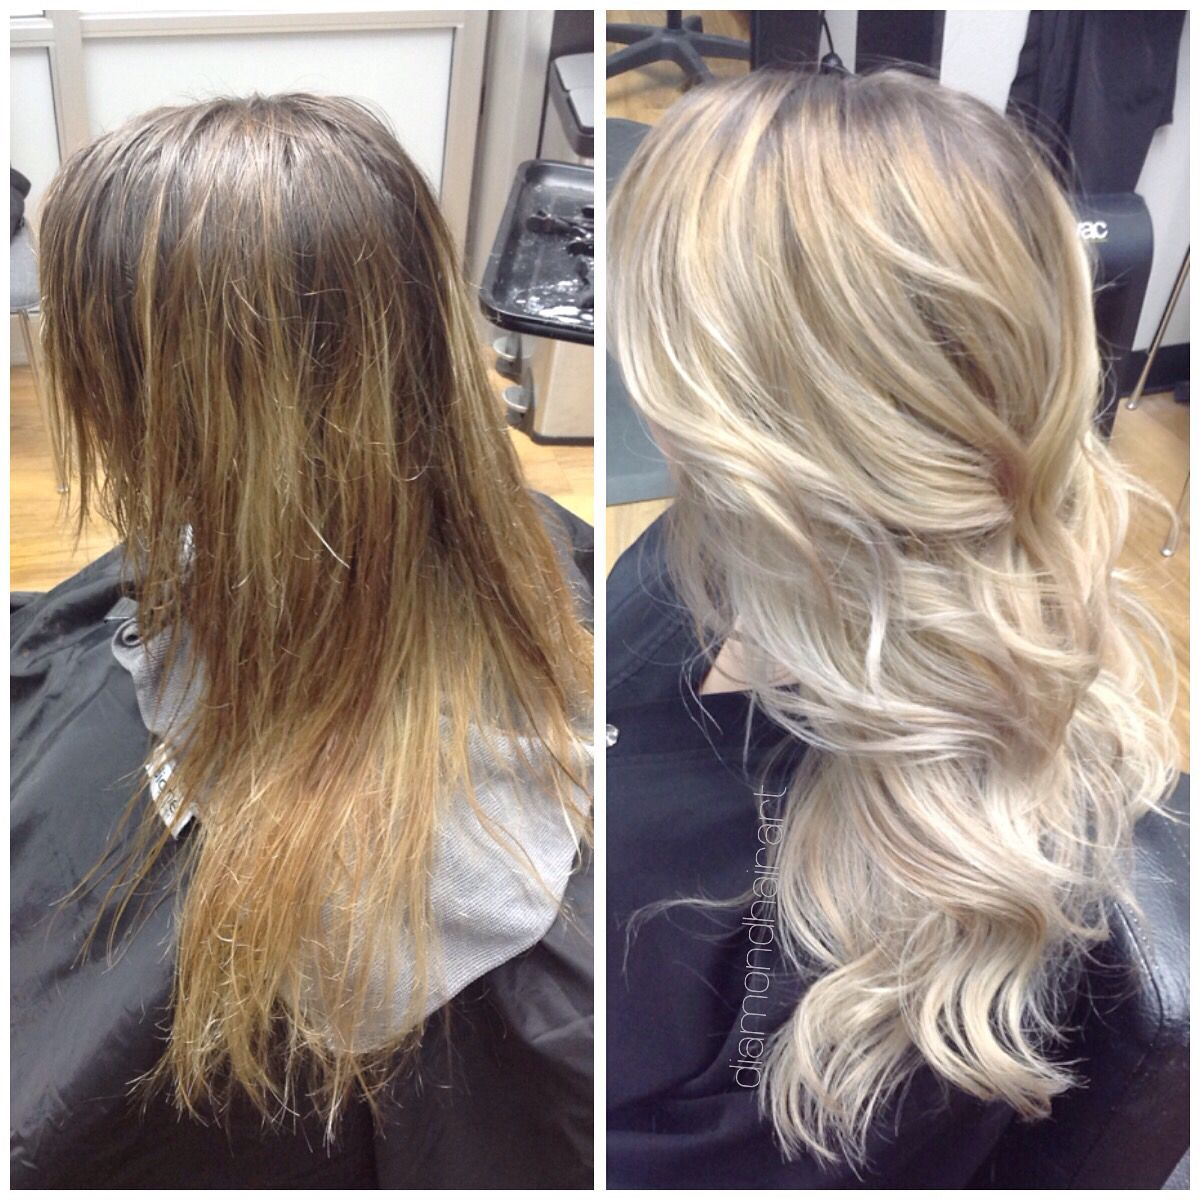 My Hair Before And After With Olaplex Permed Hairstyles Hair Styles Hair Inspiration Color